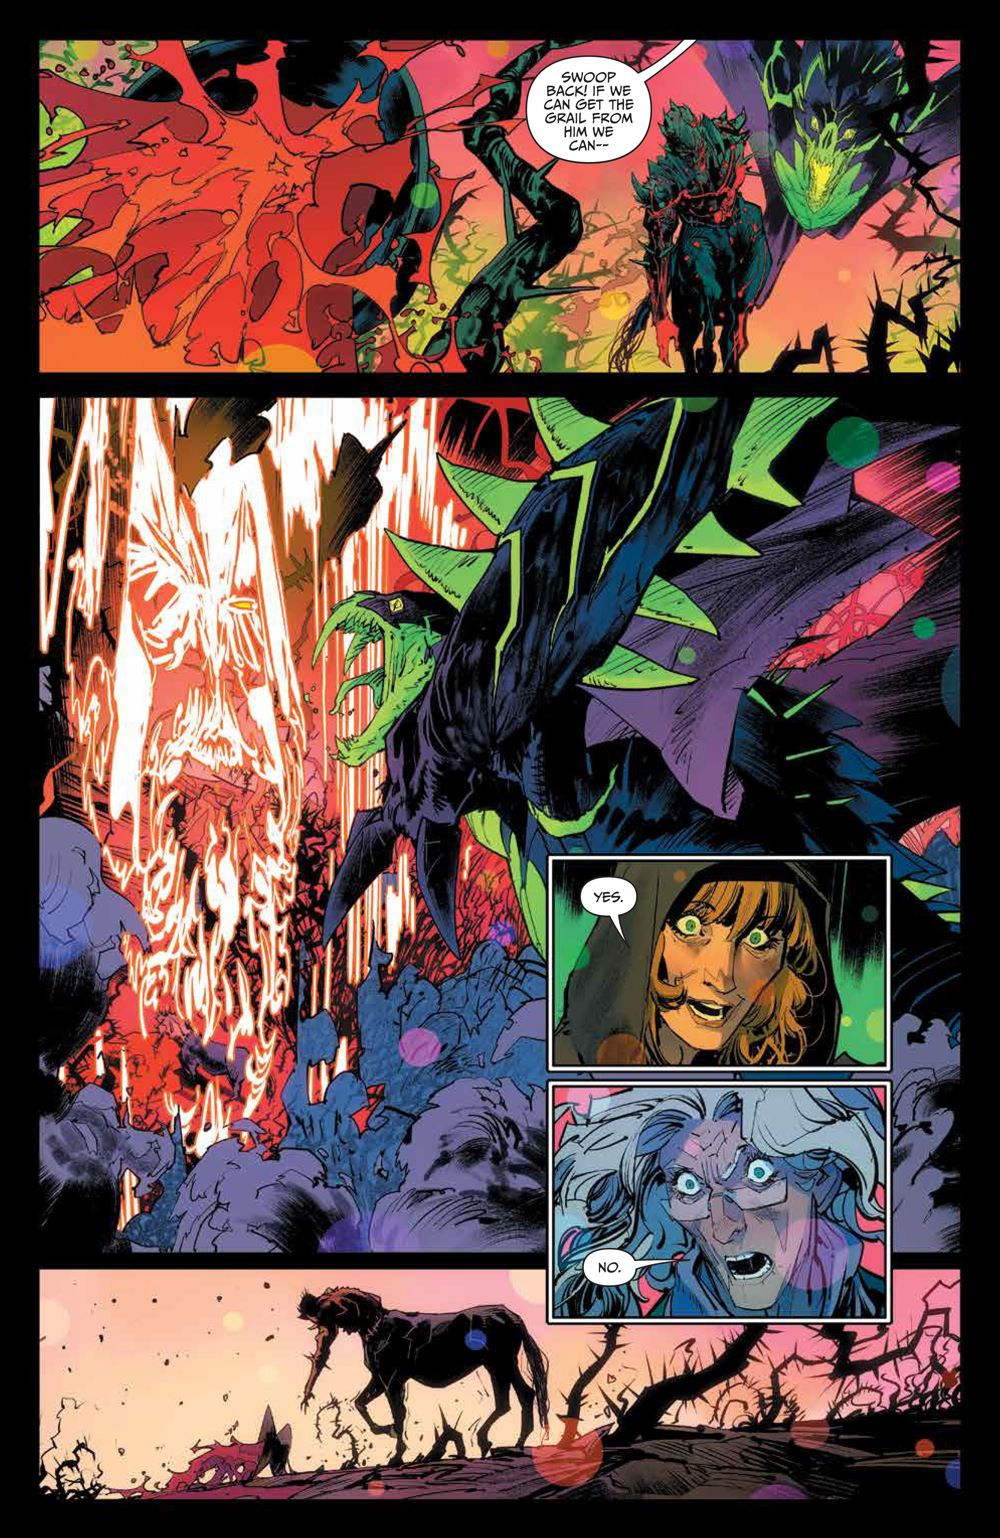 OnceFuture_018_PRESS_6 ComicList Previews: ONCE AND FUTURE #18